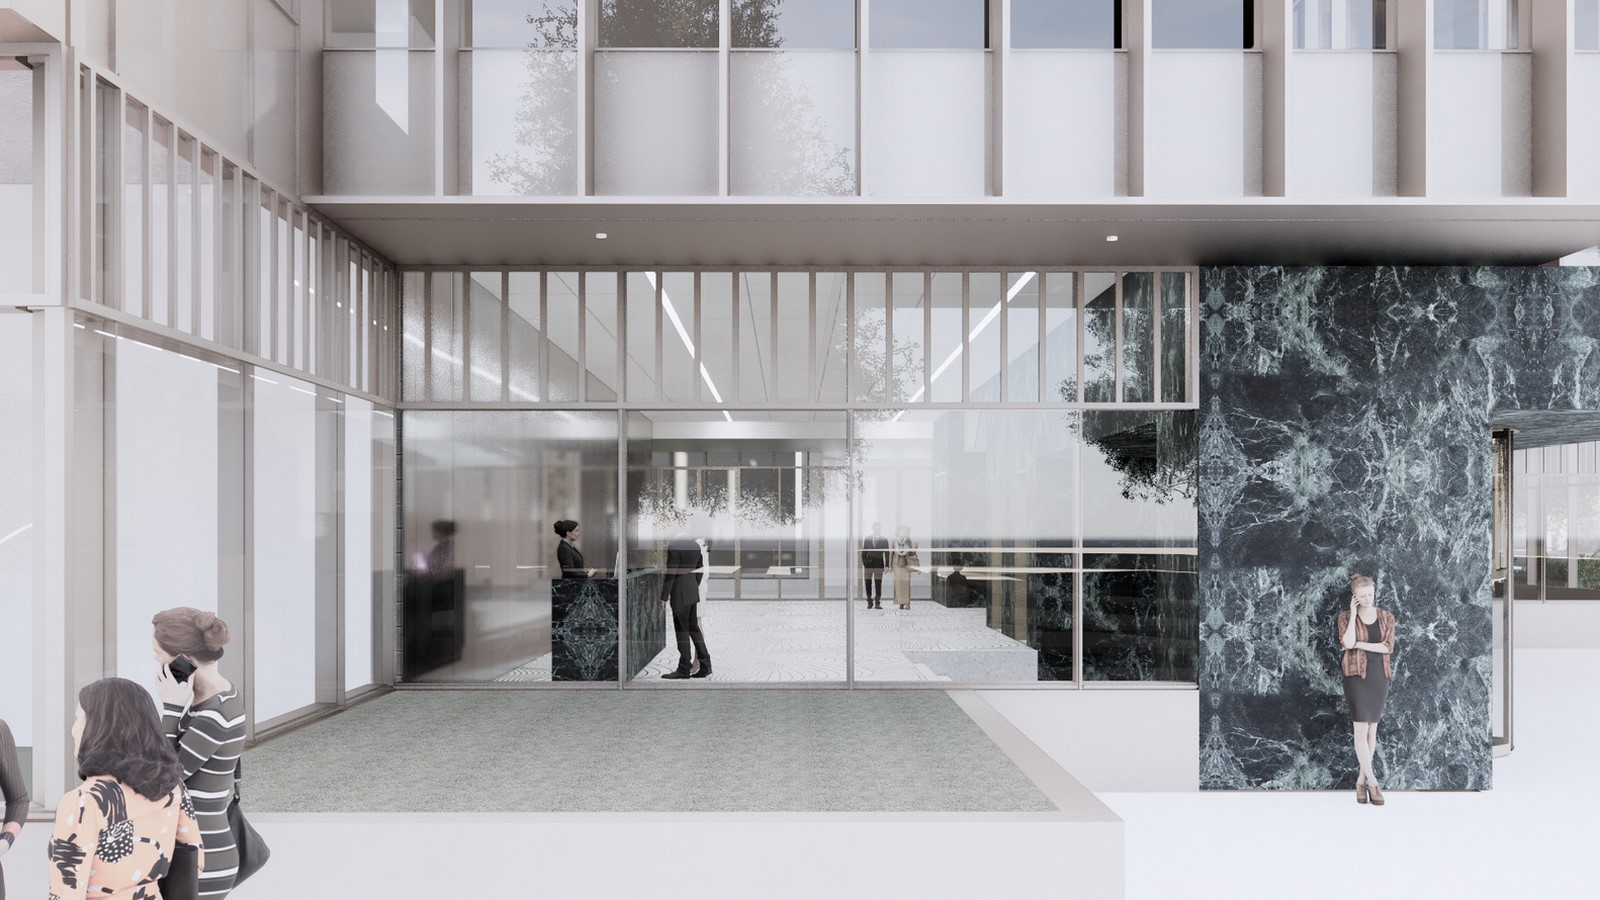 Design for a five-story office building in Amsterdam revealed by OMA / David Gianotten - Sheet6